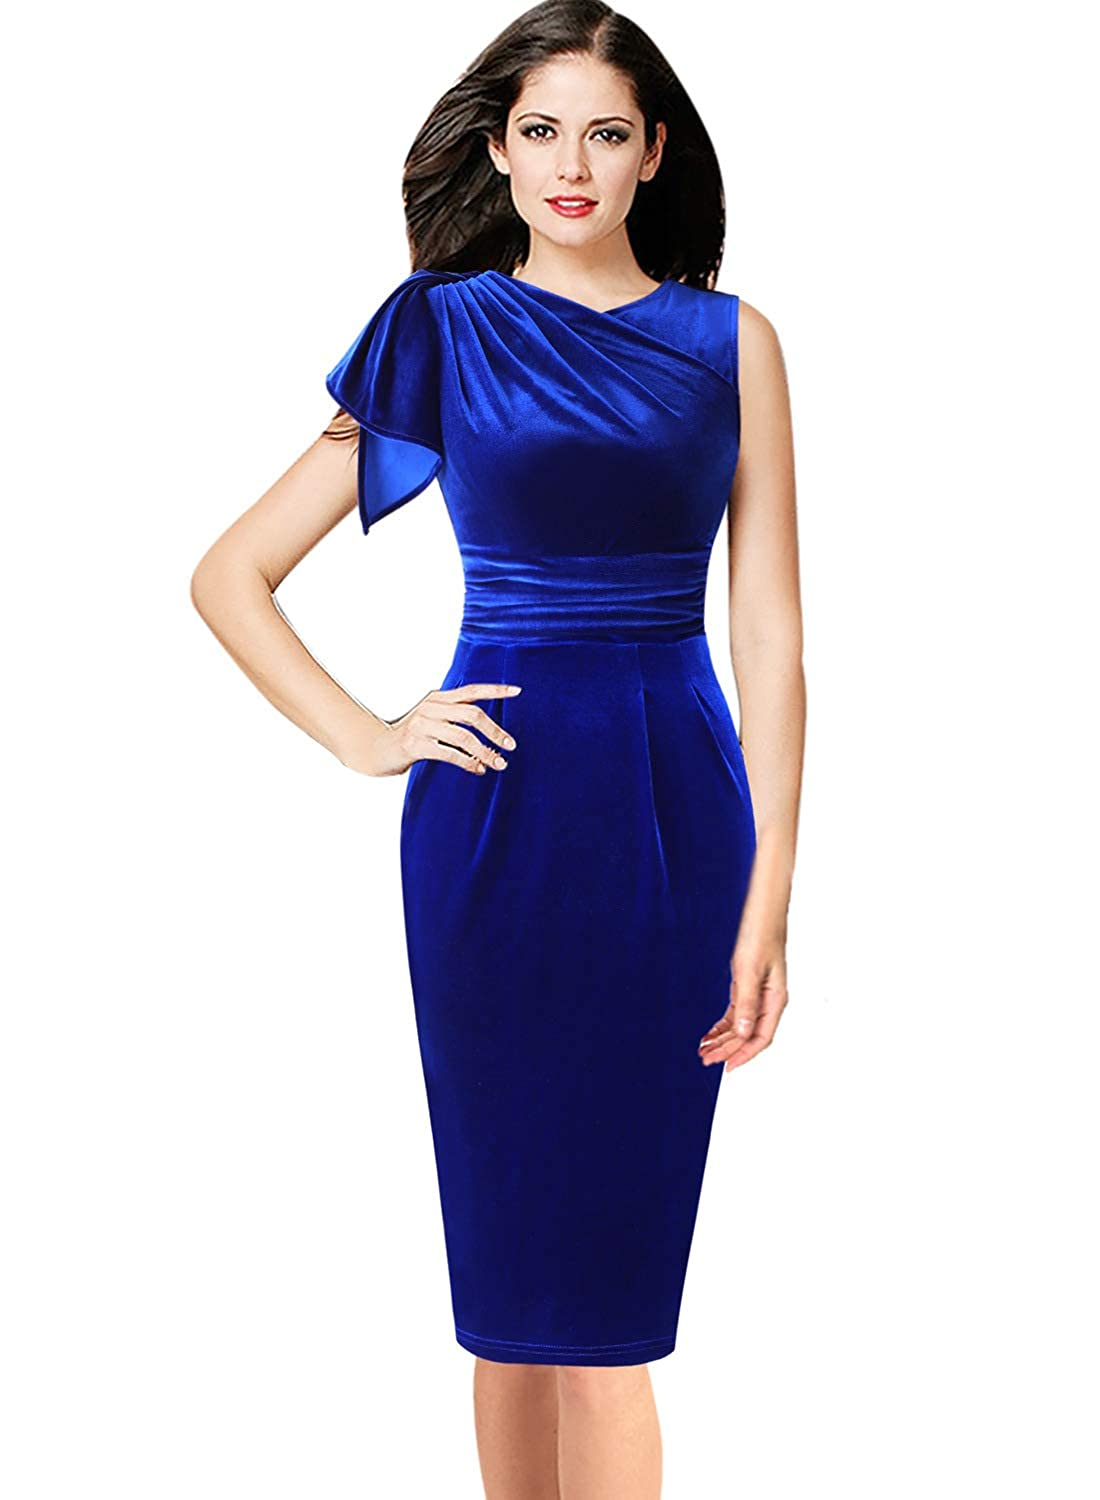 bluee Velvet VfEmage Women's Celebrity Elegant Ruched Wear to Work Party Prom Bodycon Dress